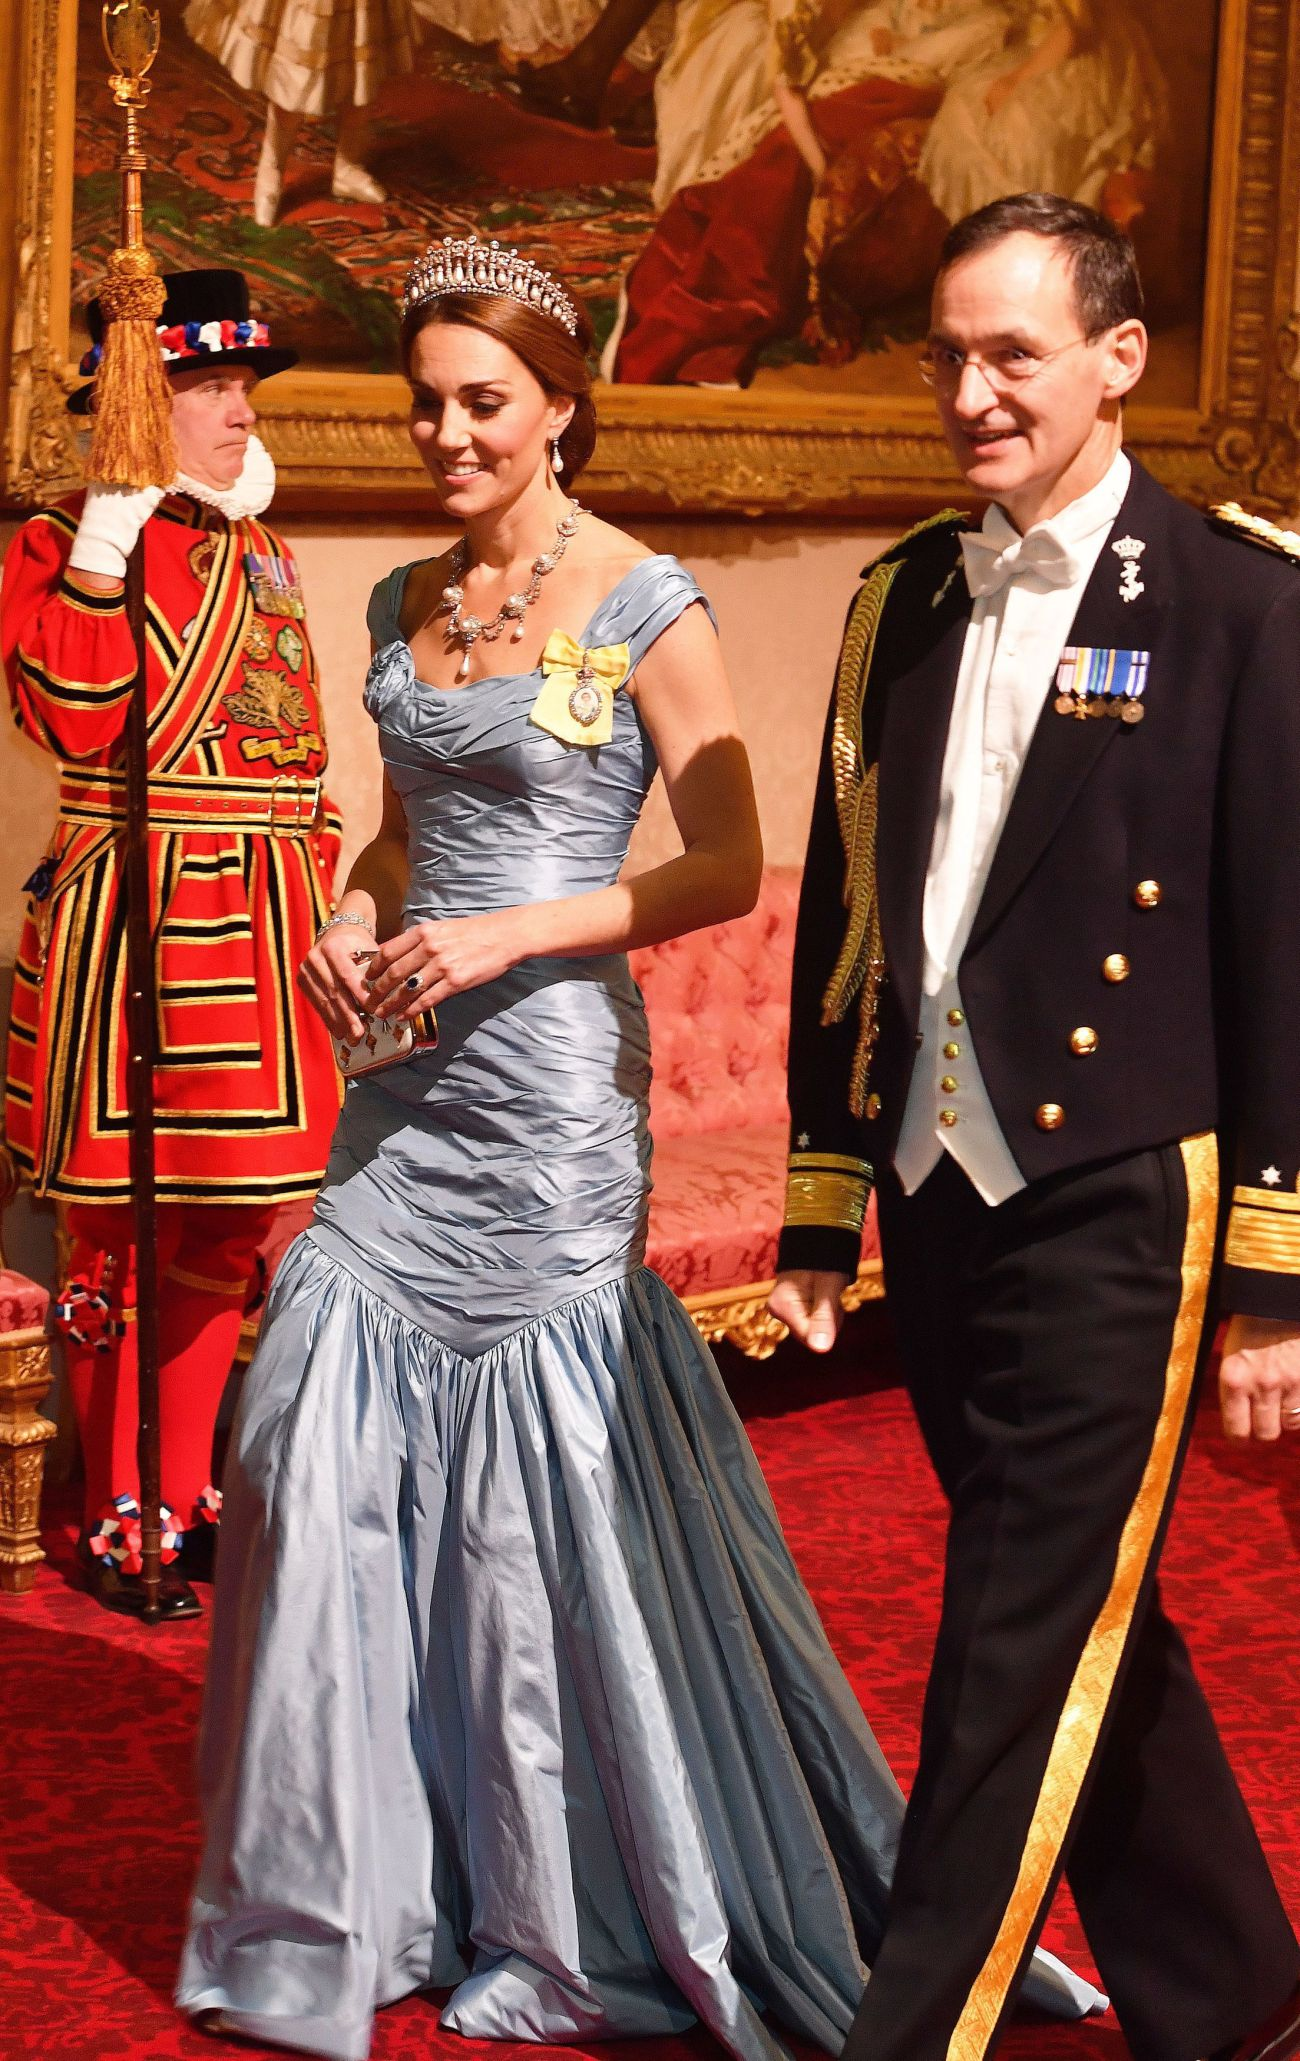 Kate walks with Rear Adm. Ludger Brummelaar at a state banquet in honor of King Willem-Alexander and Queen Maxima of the